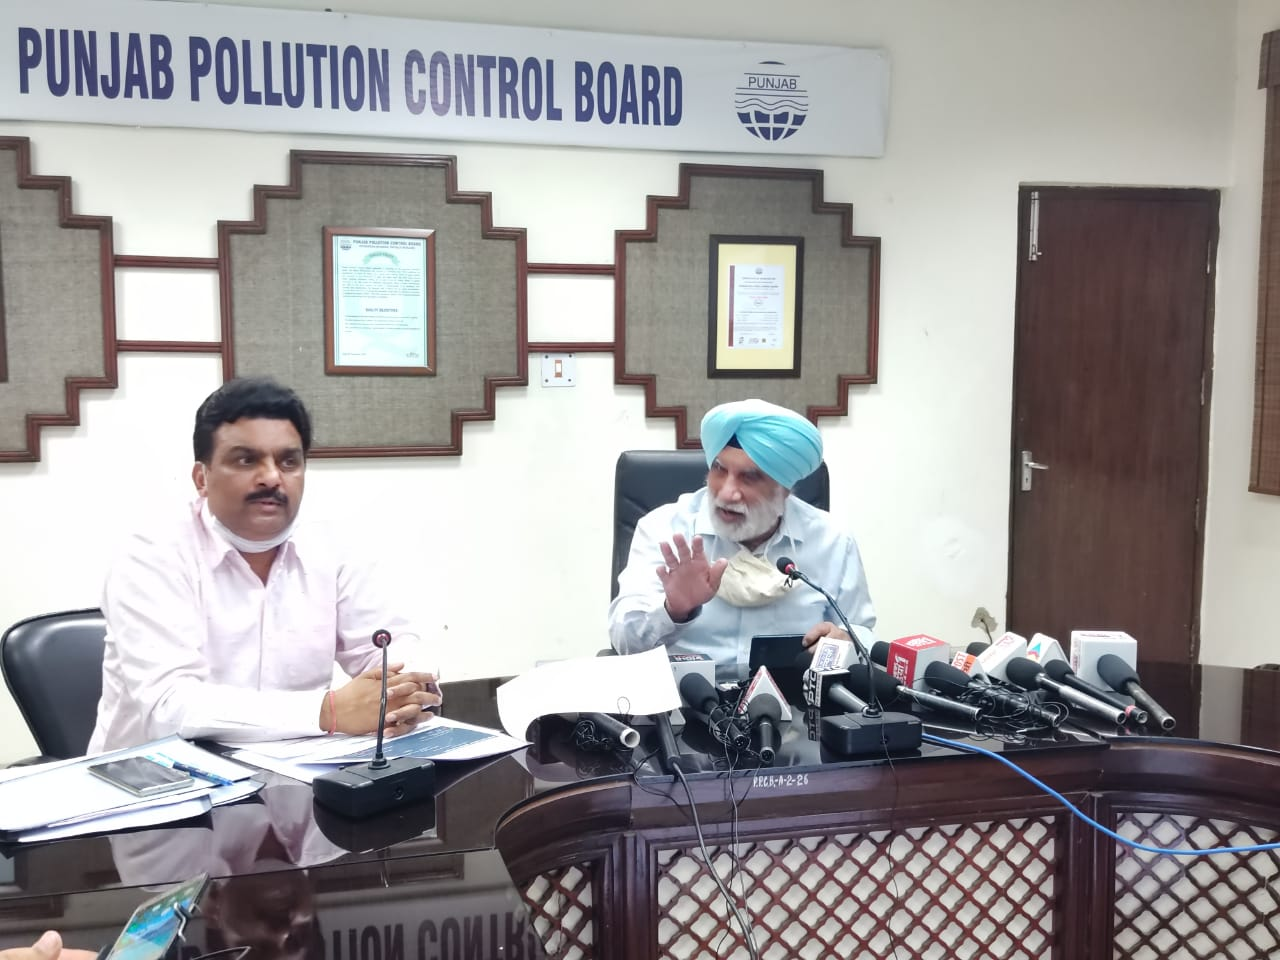 Check Your Internal Polluting Source Before Blaming Punjab-PPCB Chairman Tells Delhi Authorities